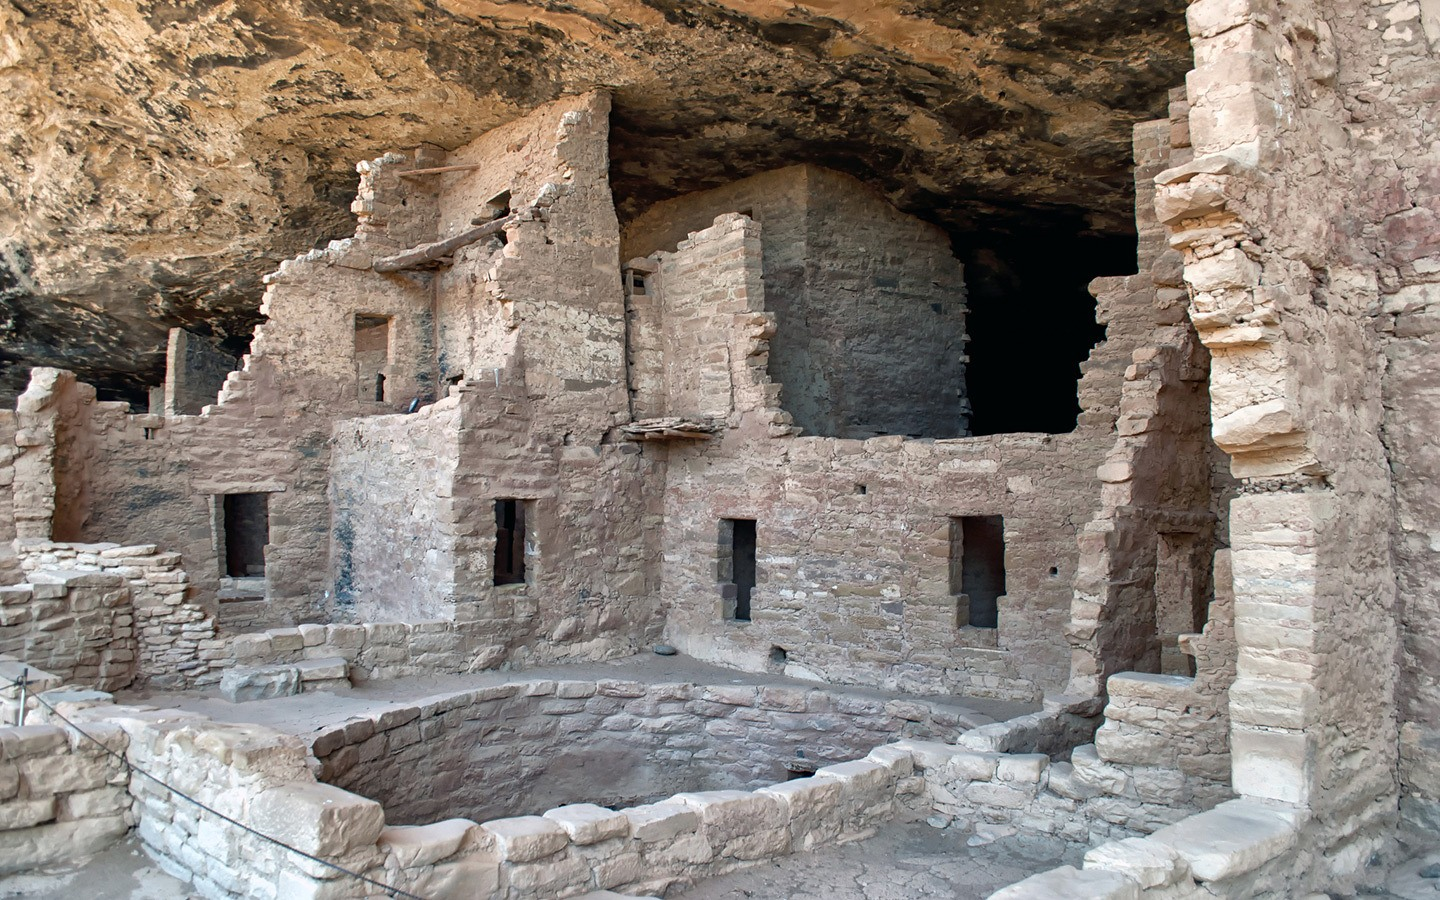 Spruce Tree House at Mesa Verde National Park